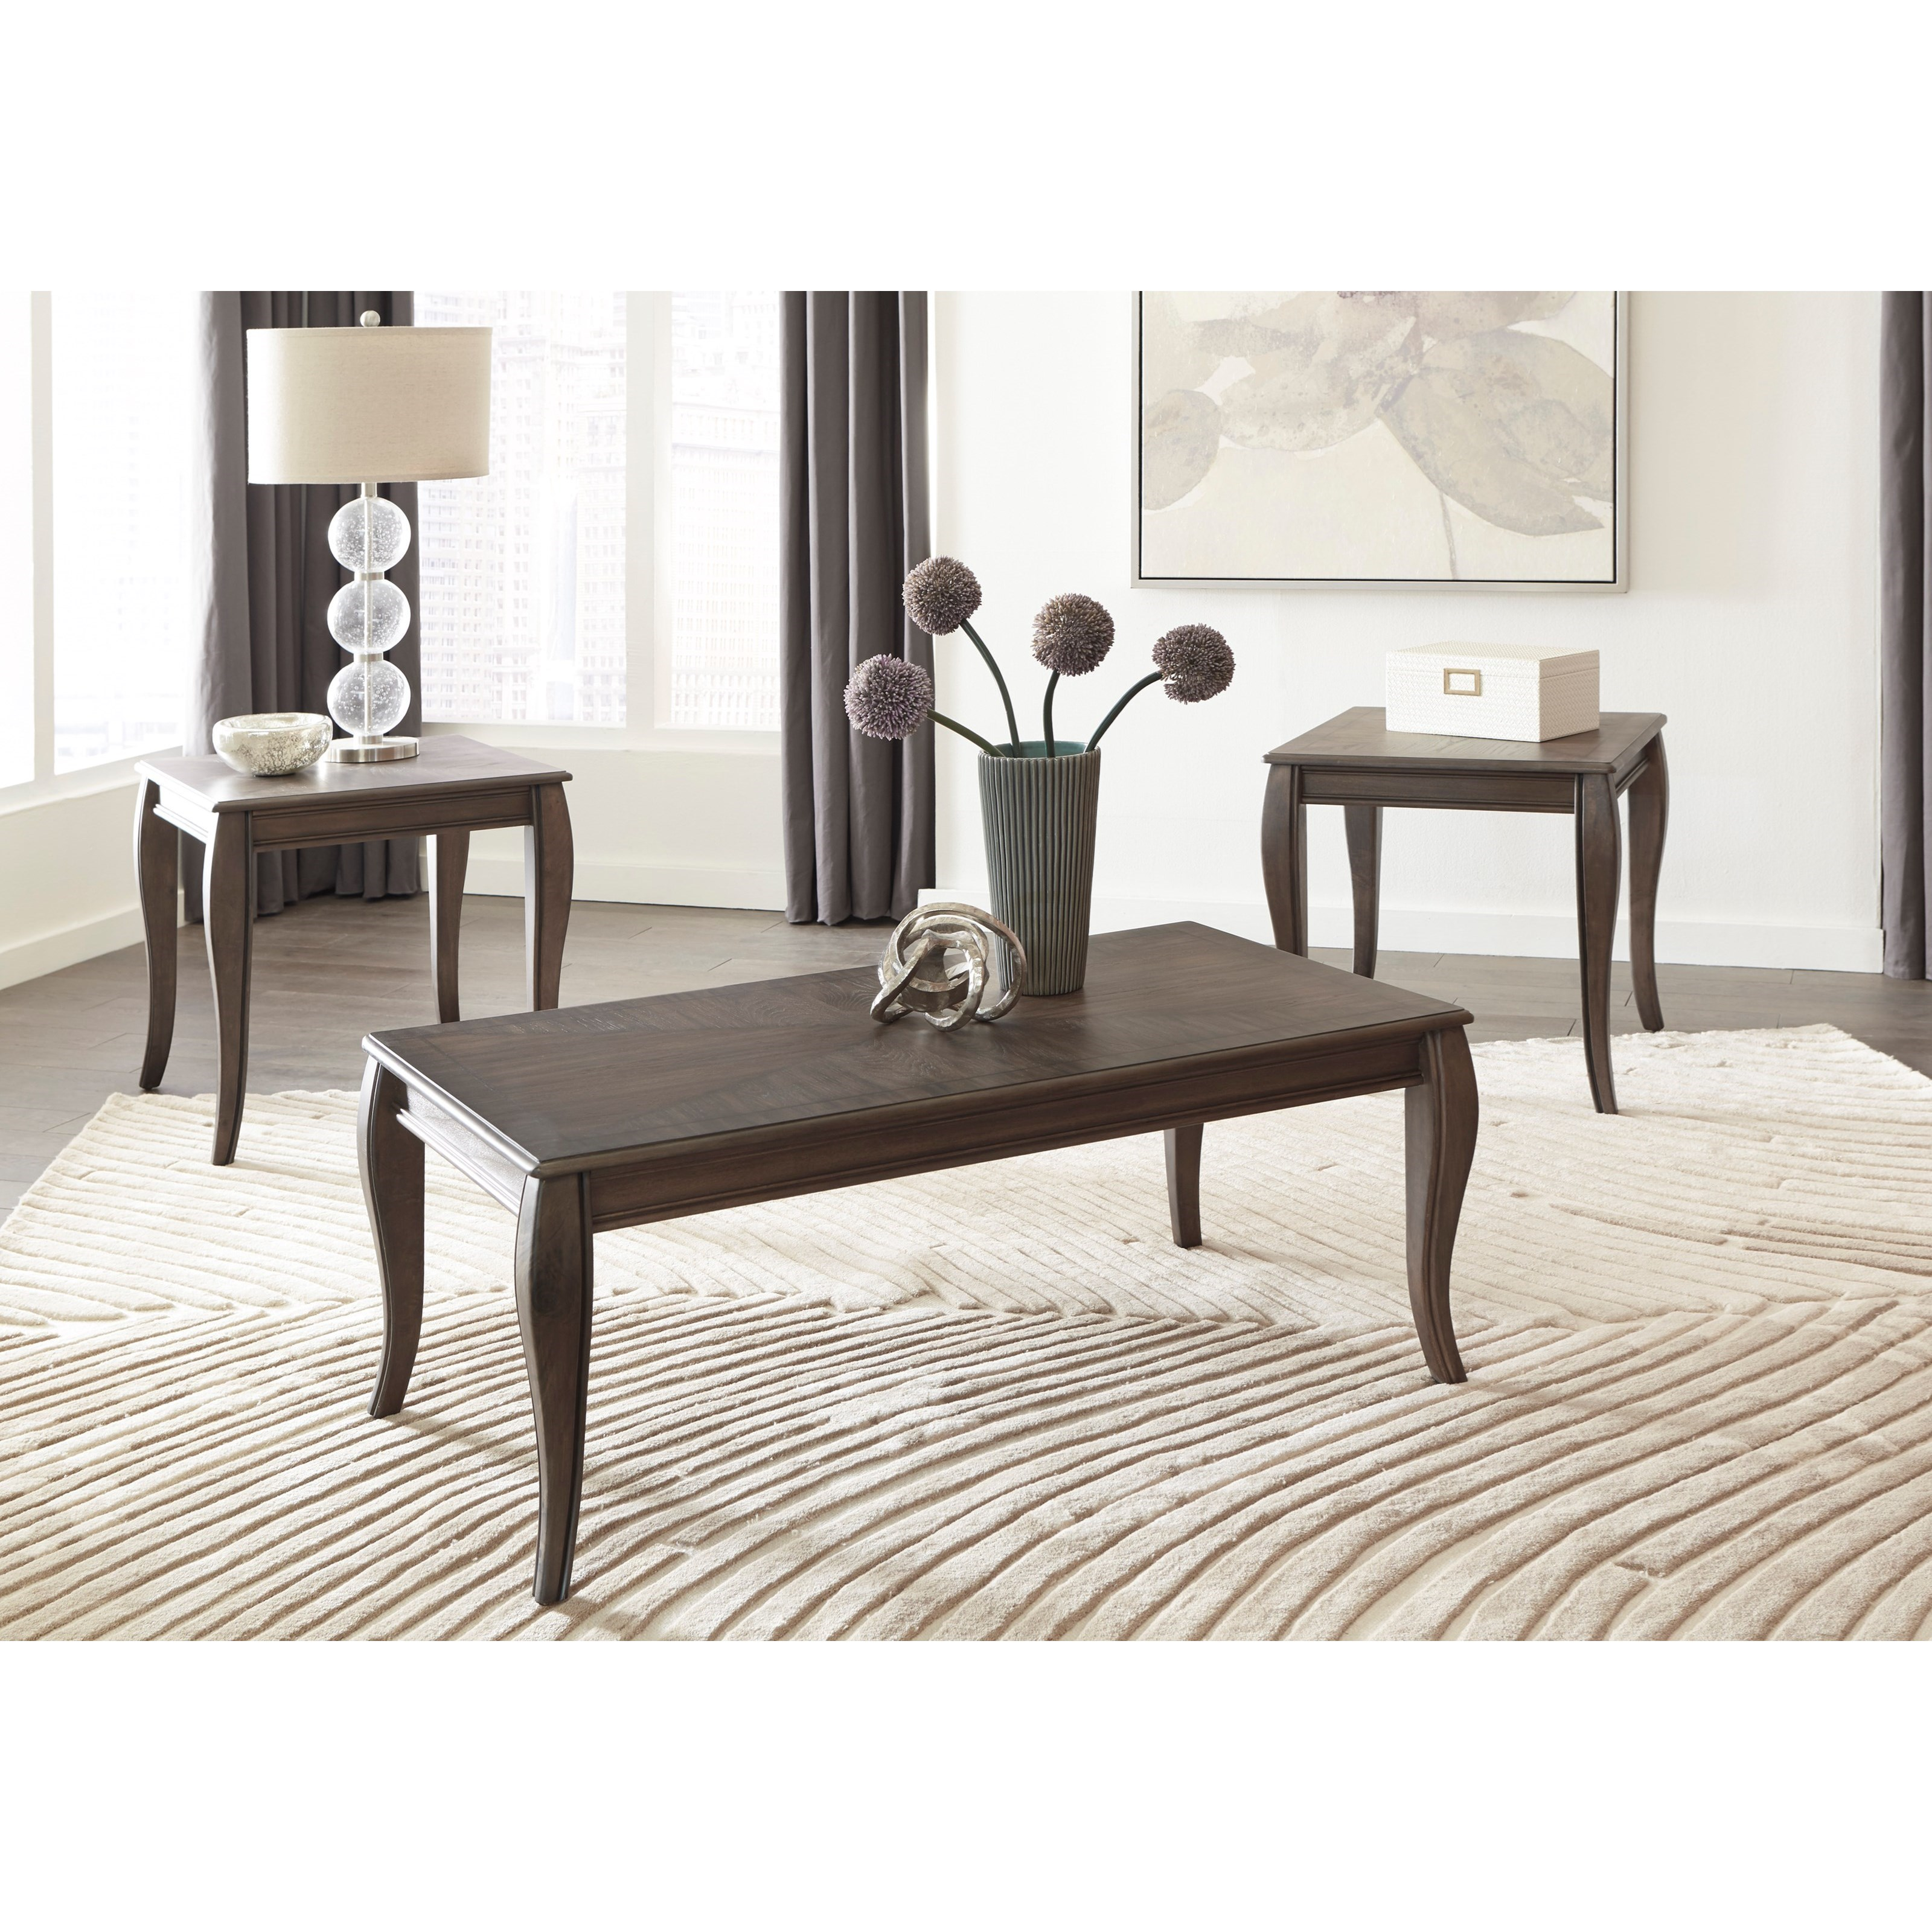 Classic 1 Occasional Table Set With Inlay Tabletop Design Ruby Gordon Furniture Mattresses